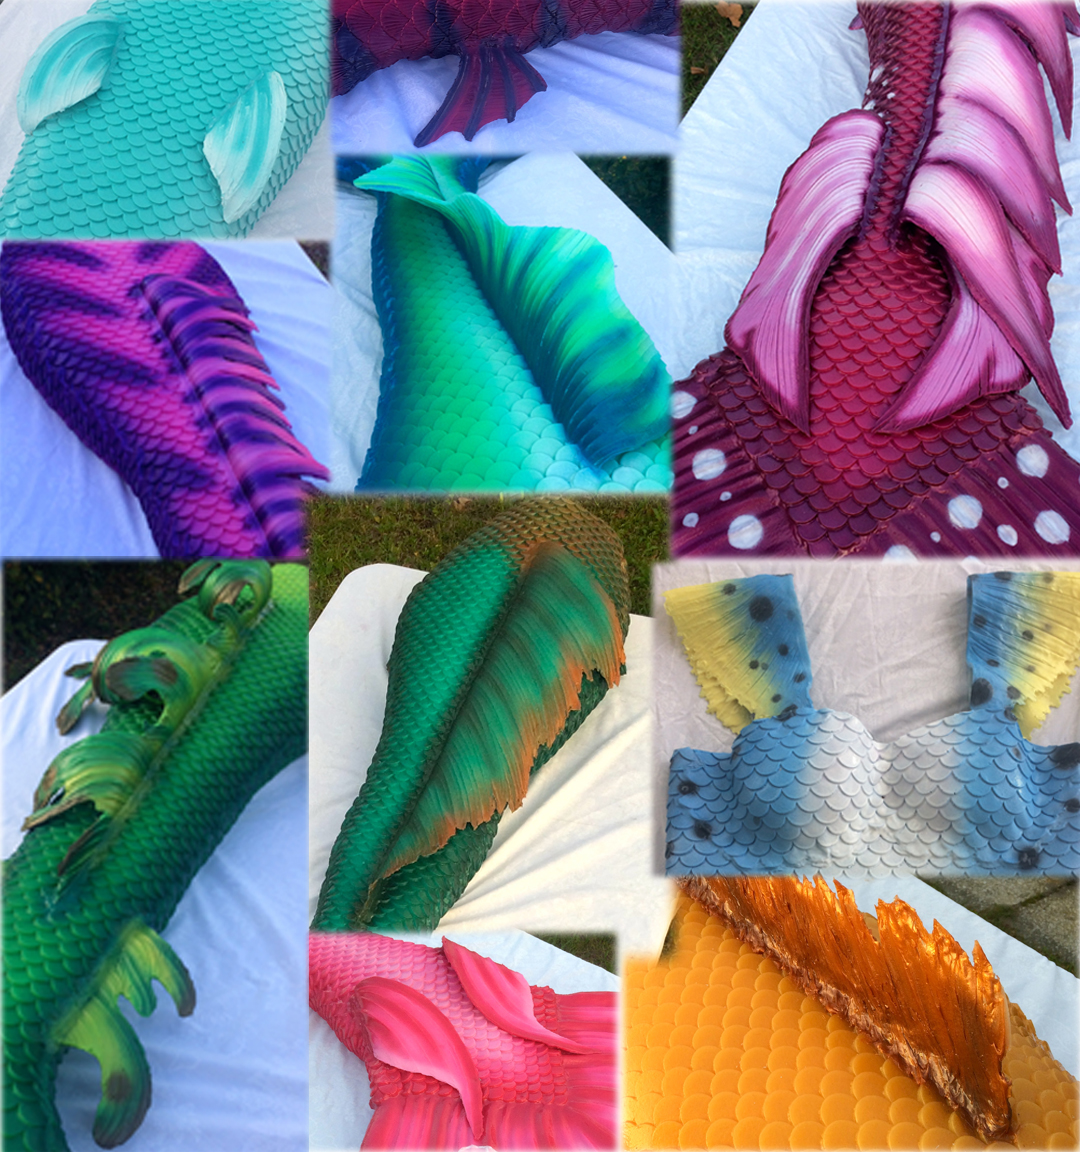 A SMALL SELECTION OF SOME OF THE UNIQUE FINS WE HAVE MADE